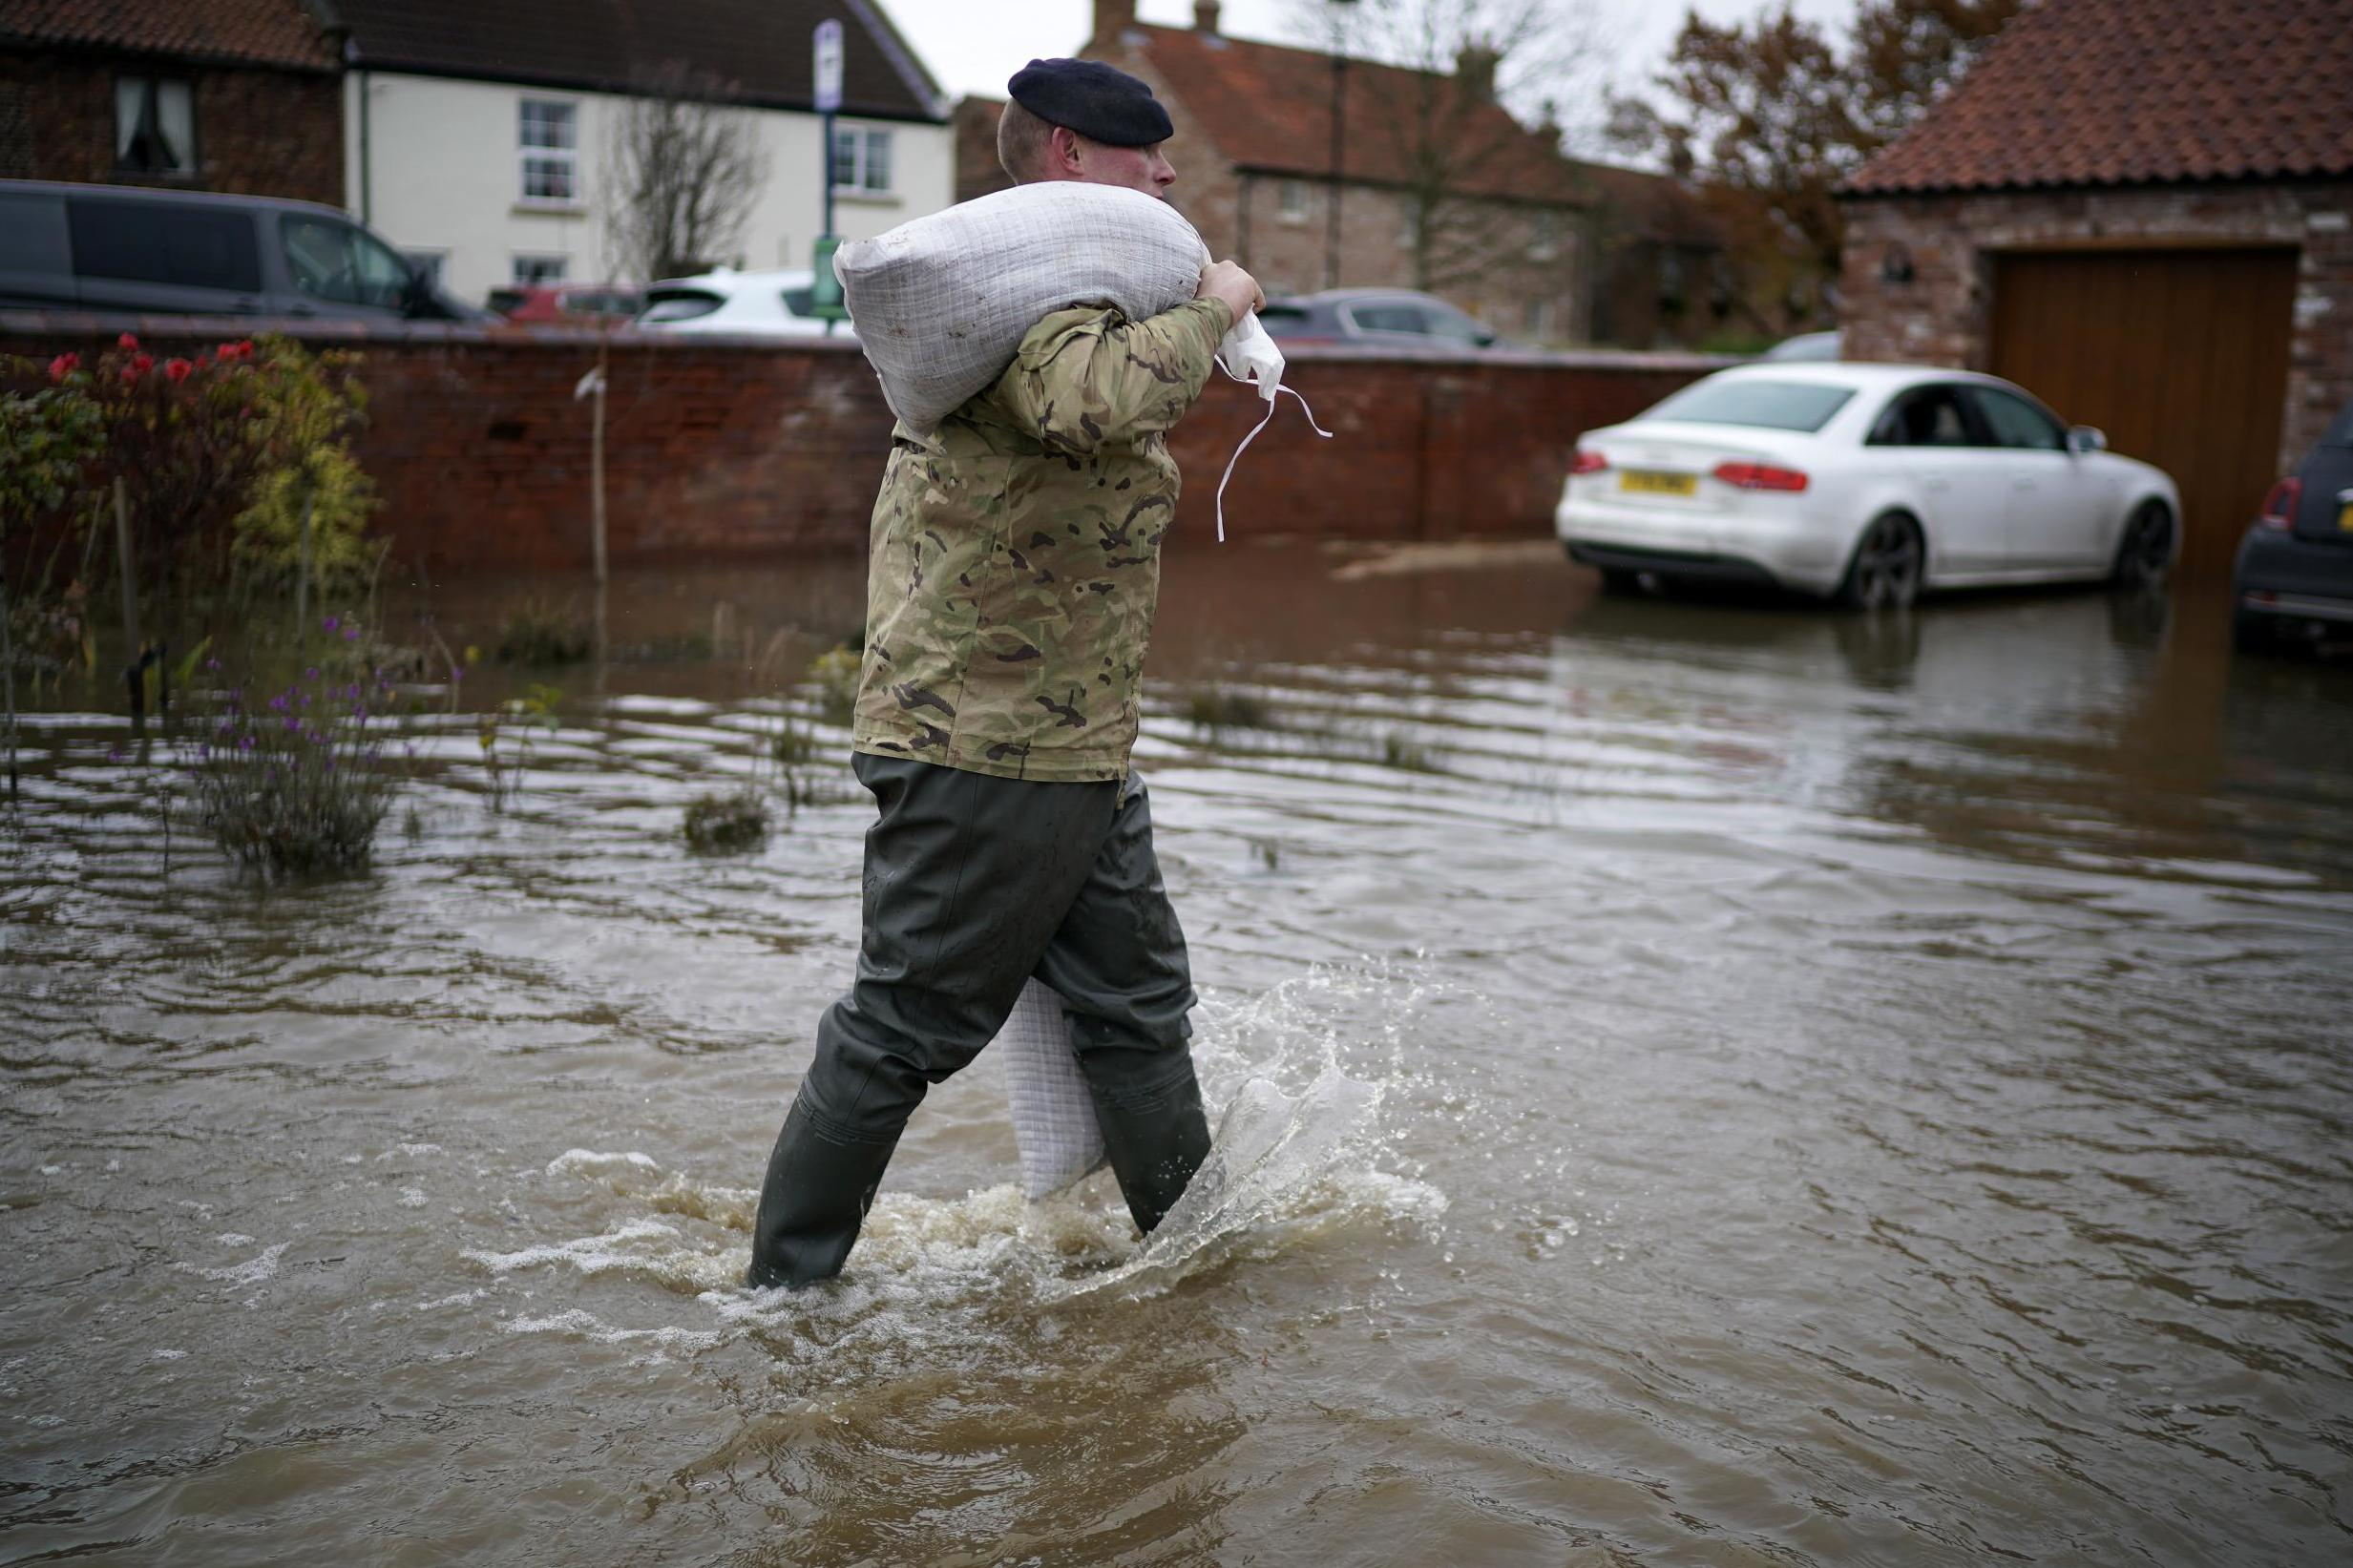 UK weather forecast: Warnings issued for five days as flood-hit areas brace for more rain